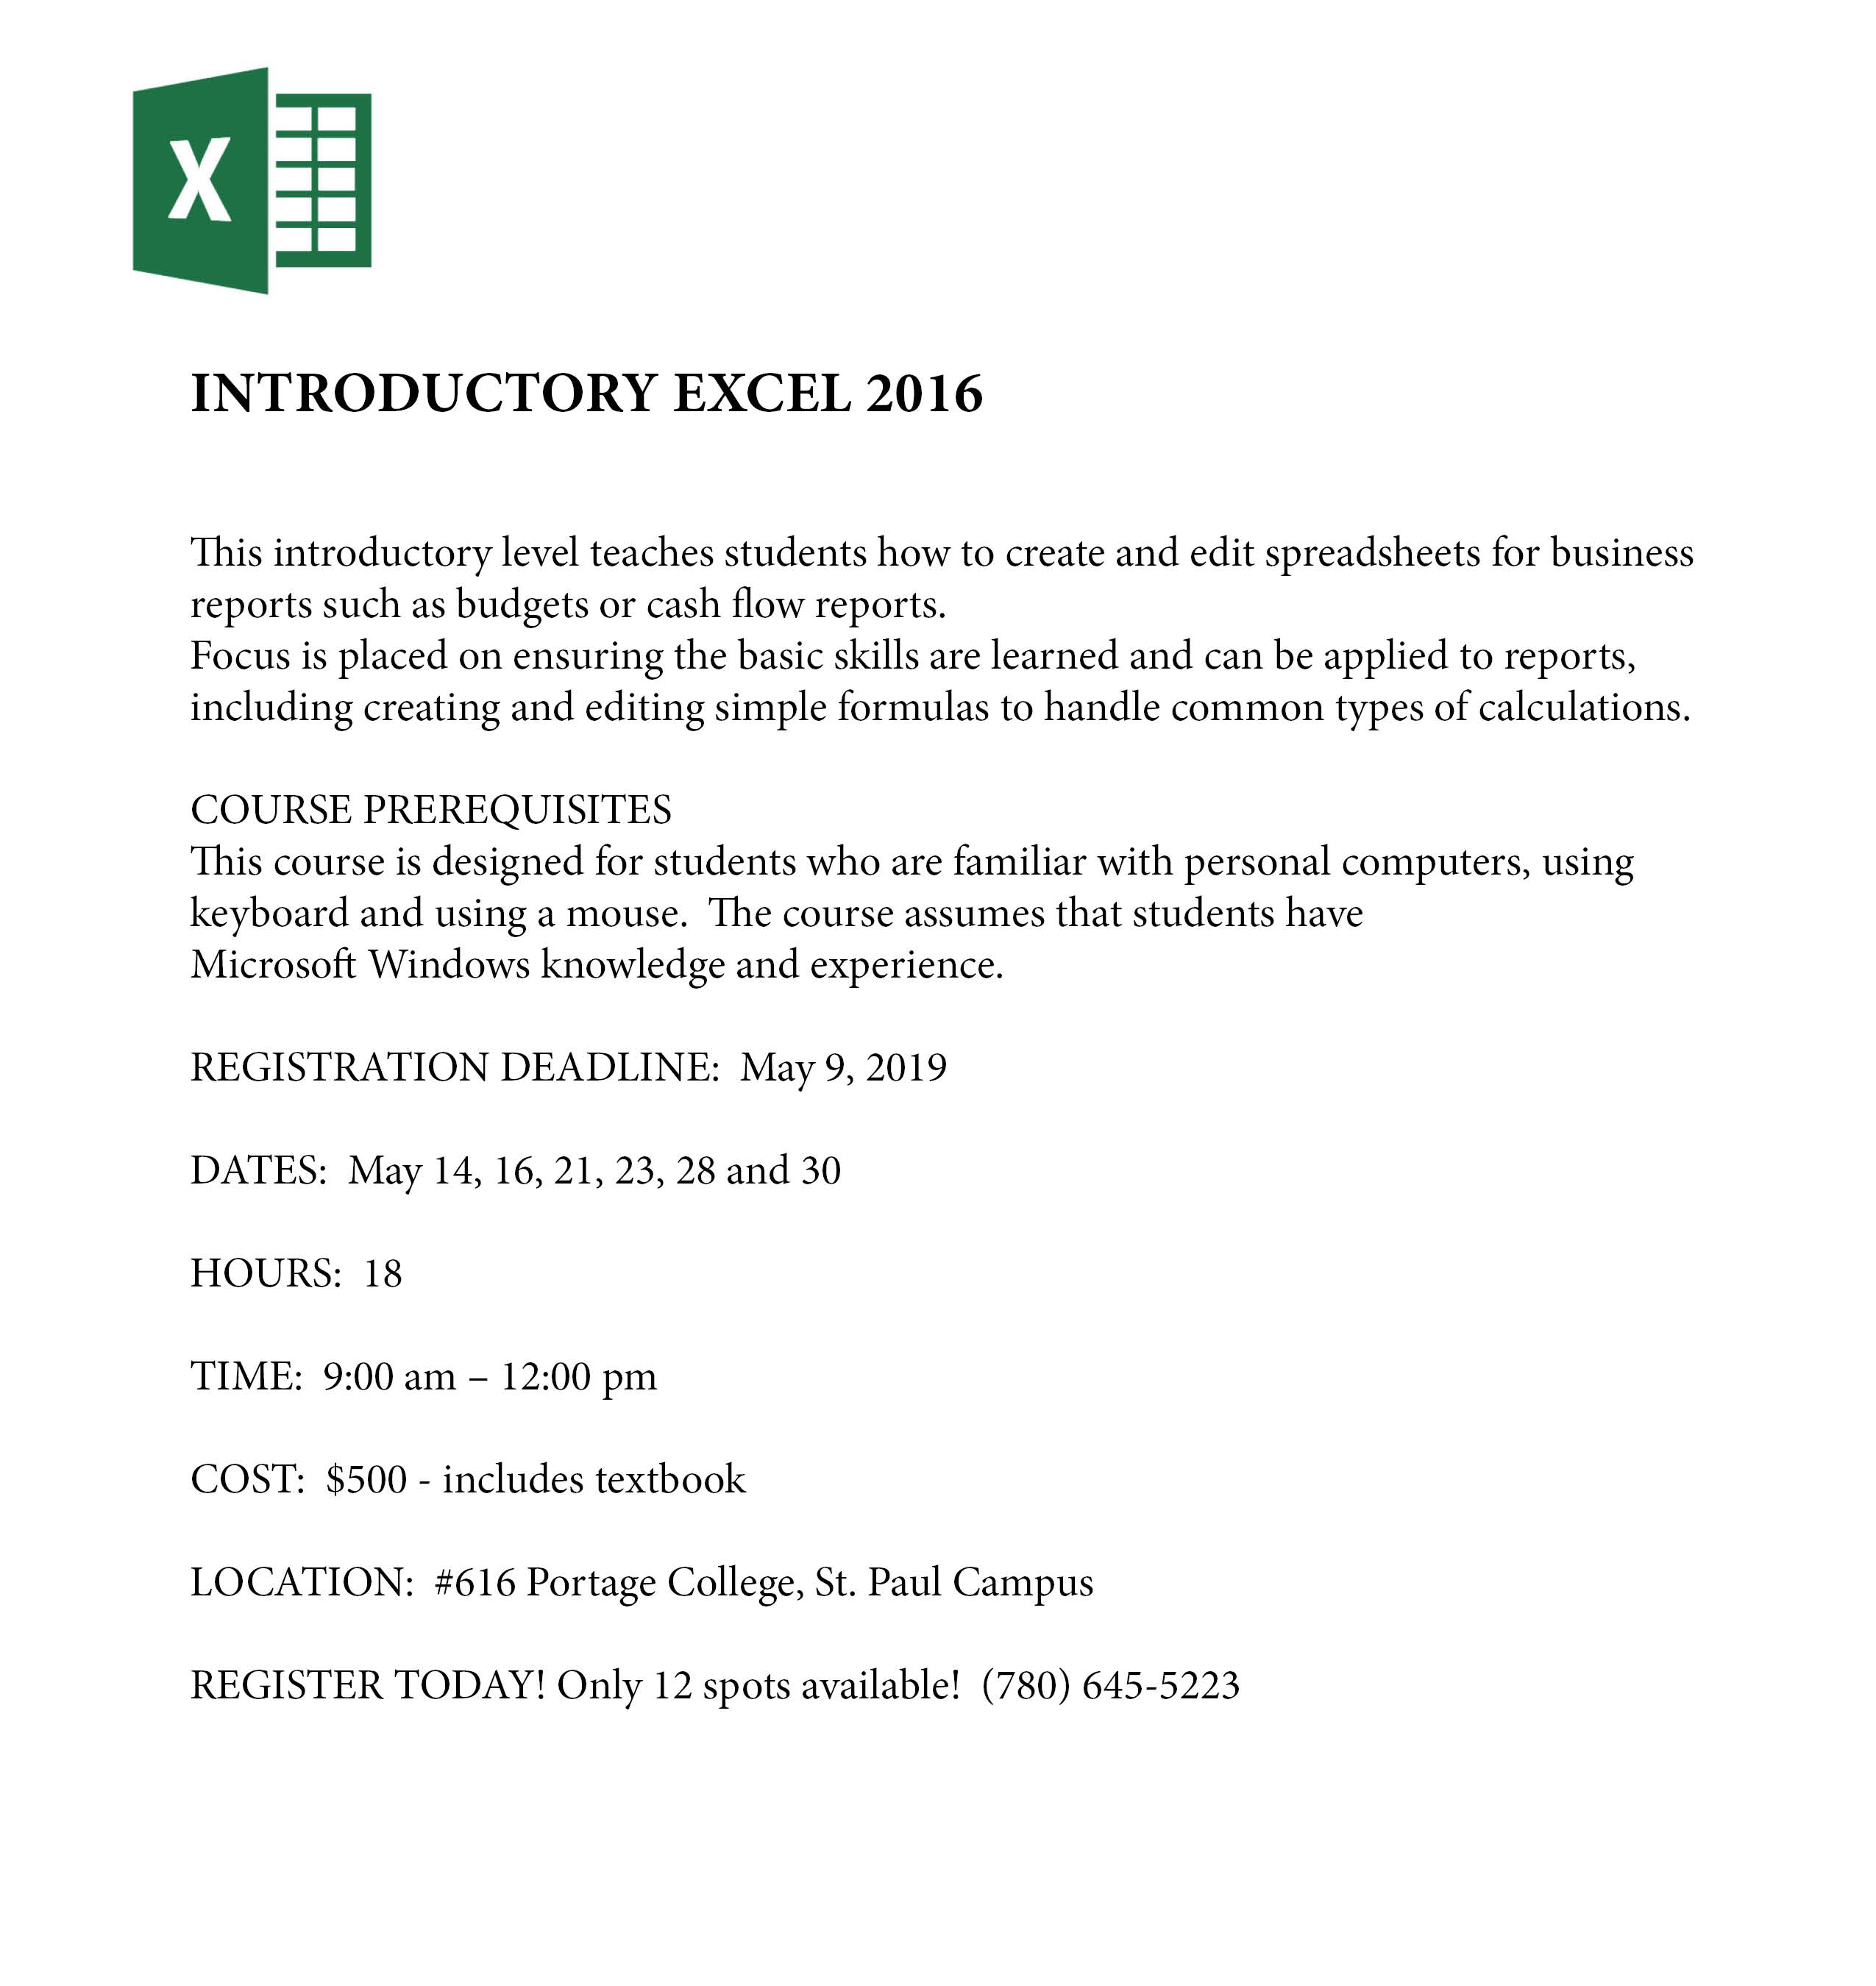 Introductory Excel 2016